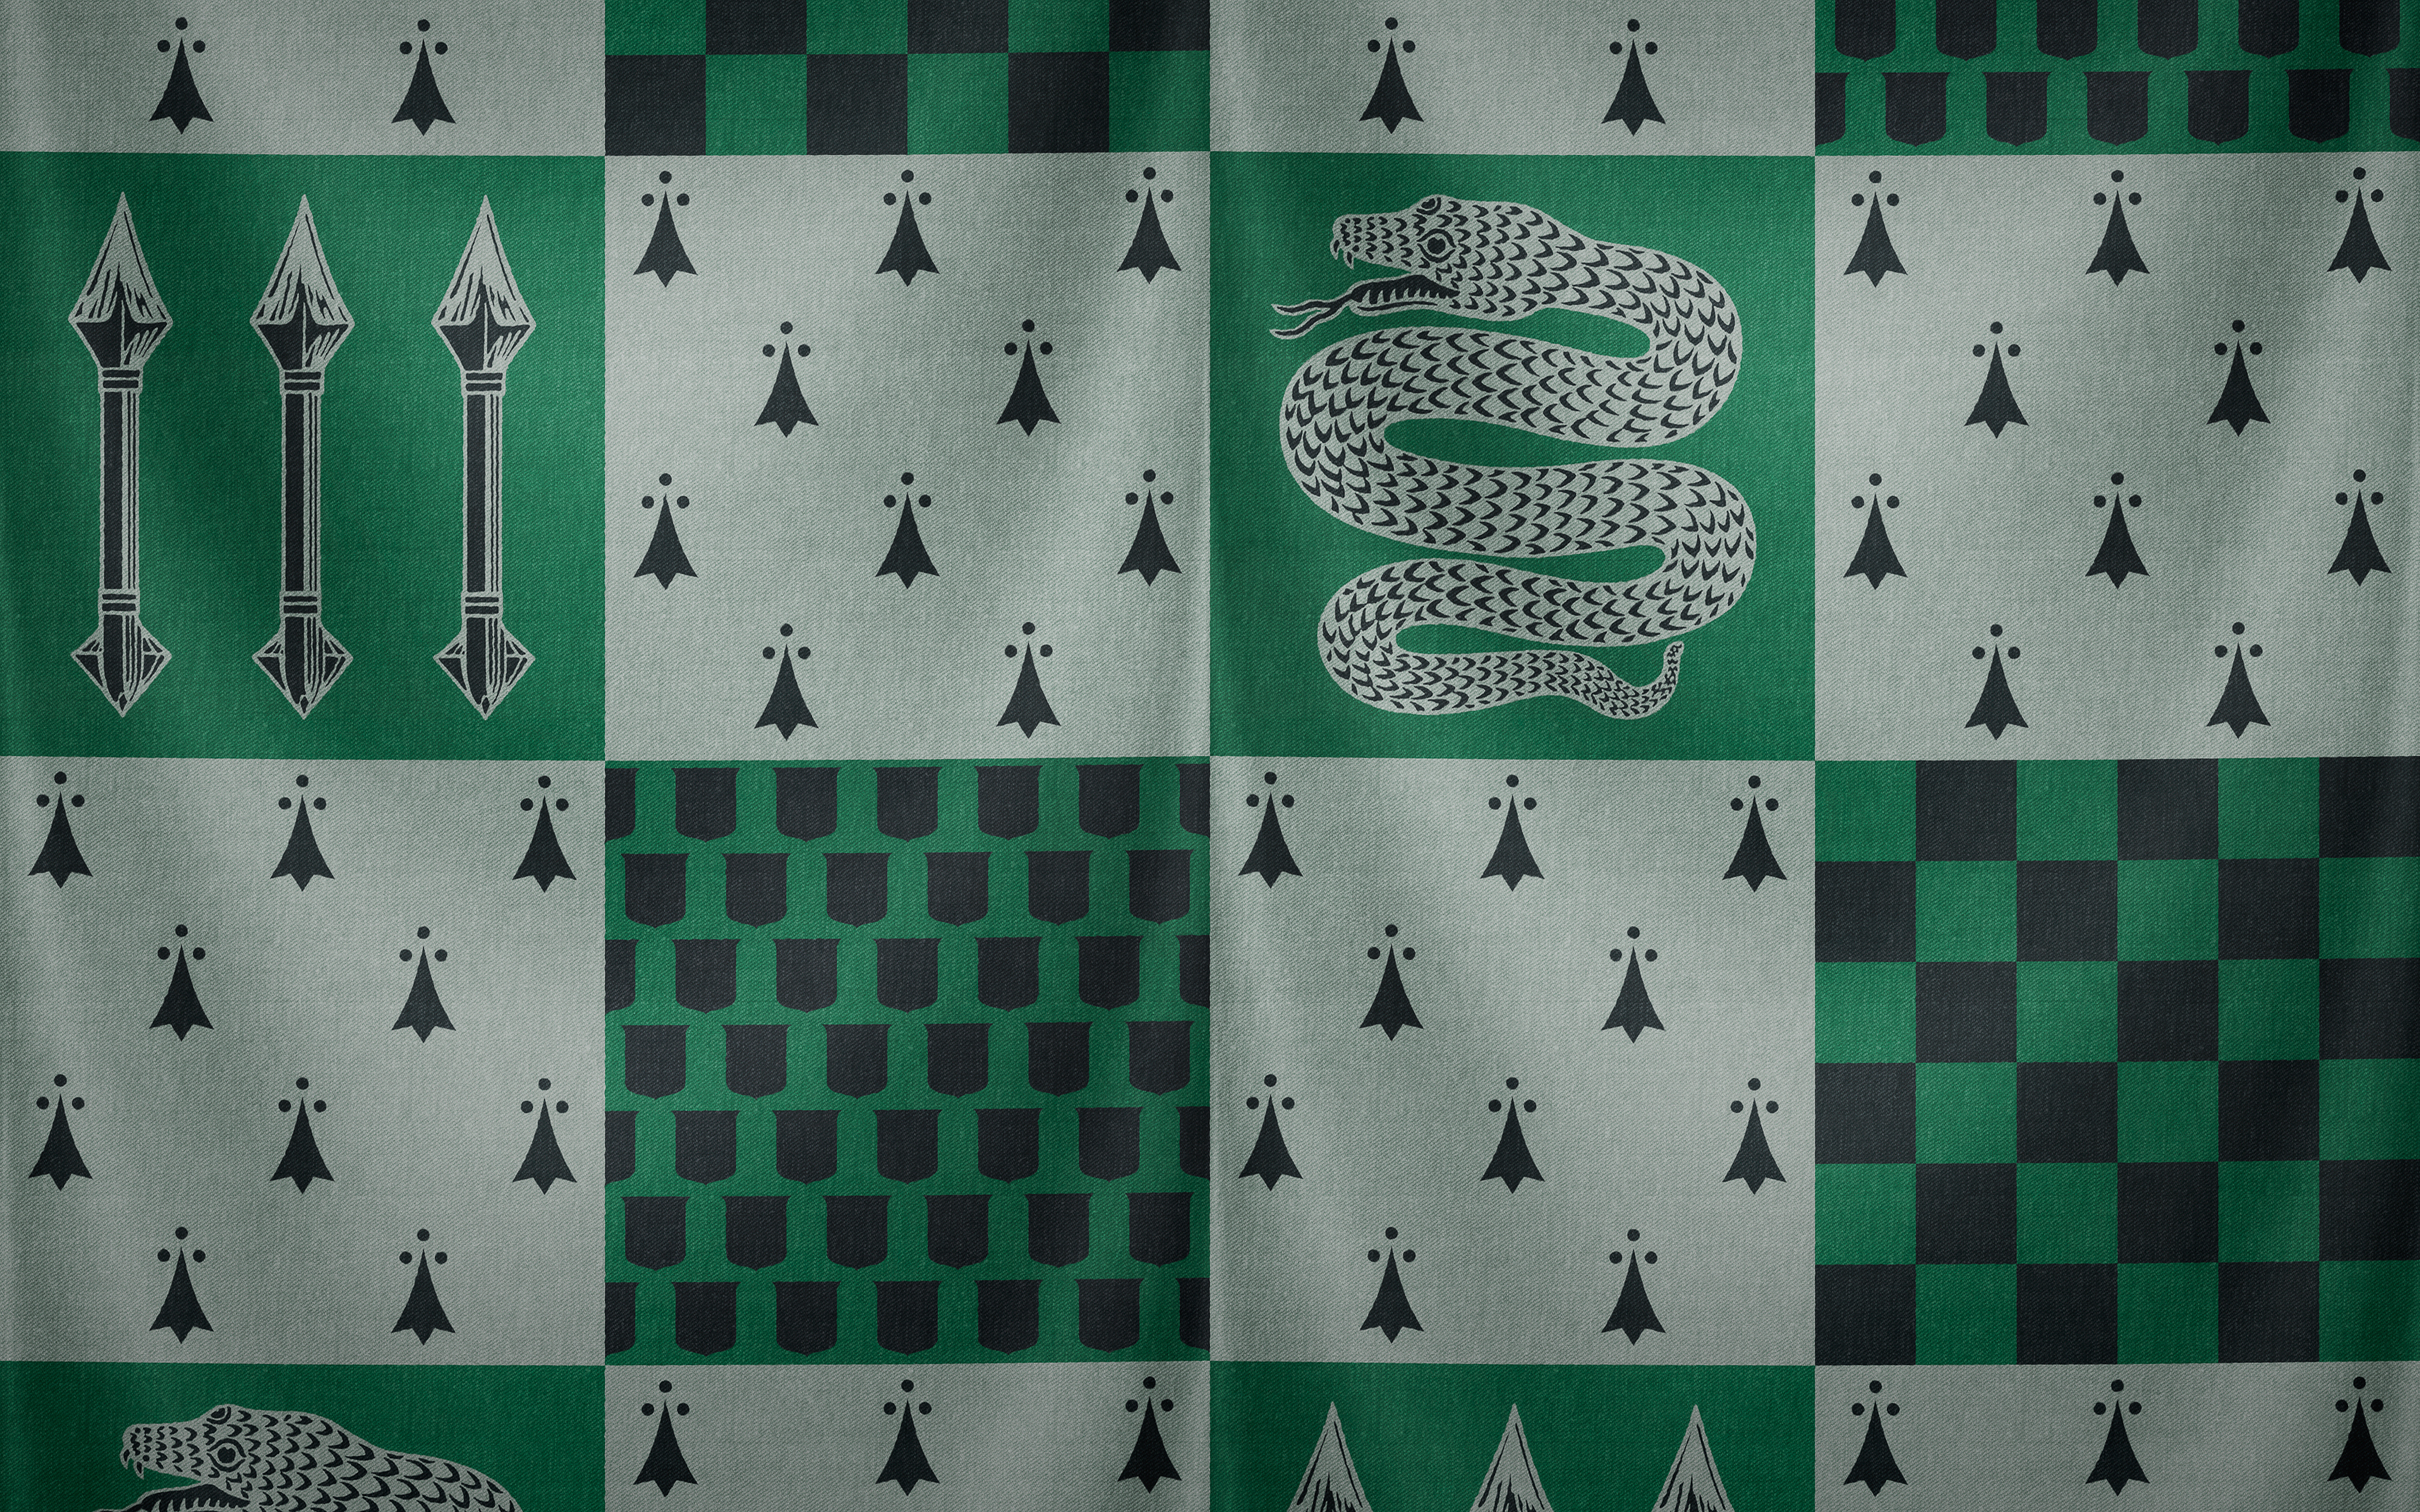 slytherin iphone wallpaper wallpapersafari